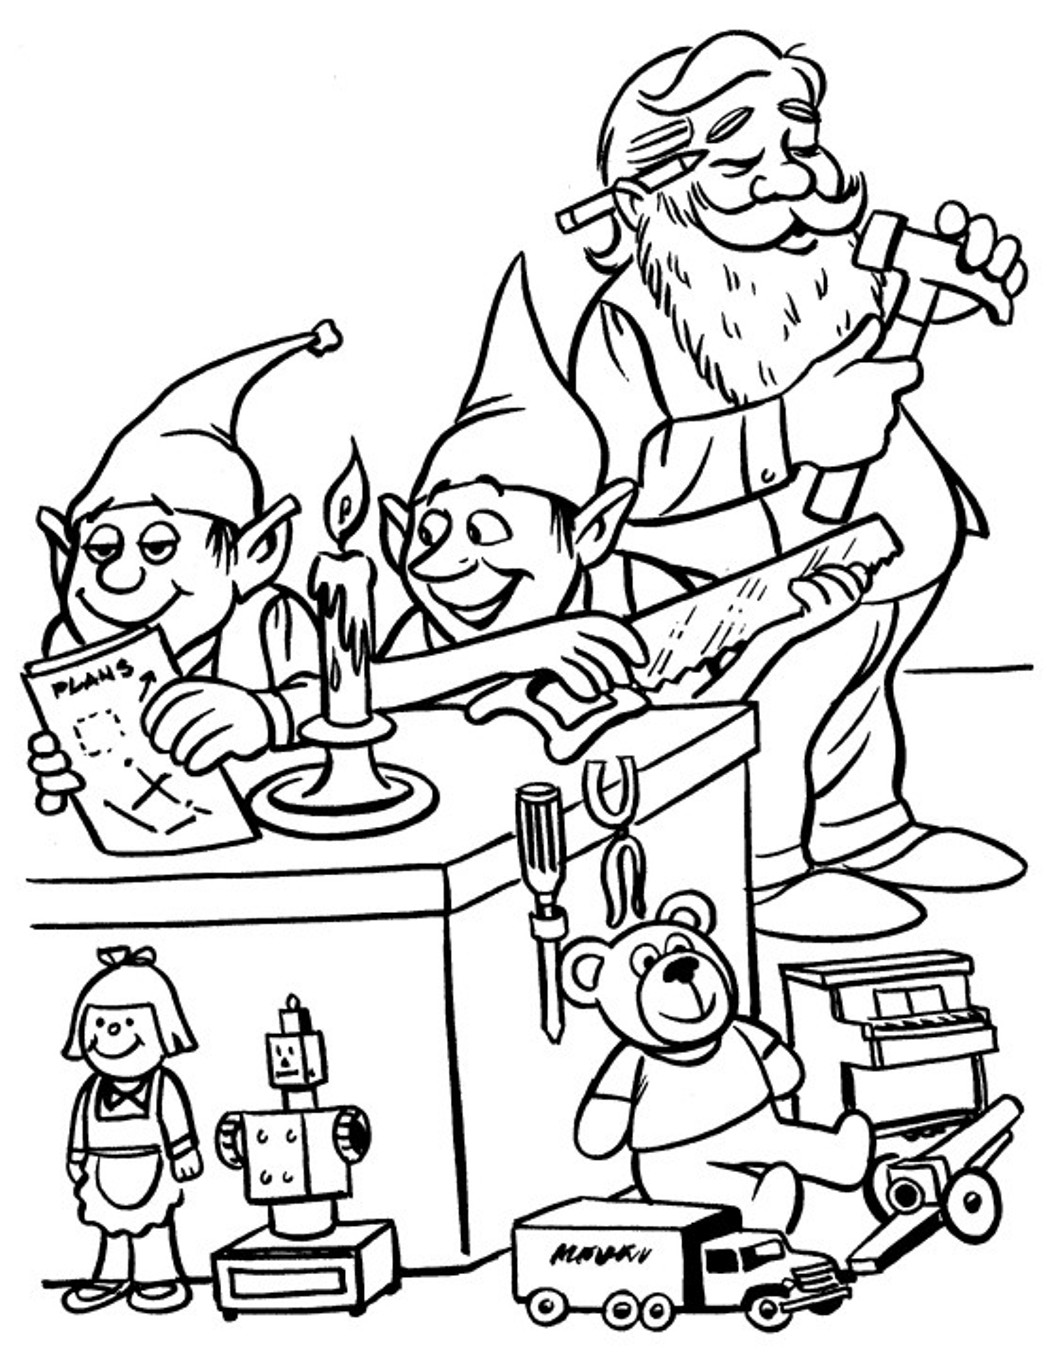 Ms Santa Claus Coloring Pages With Free Father Christmas Pictures To Colour Download Clip Art